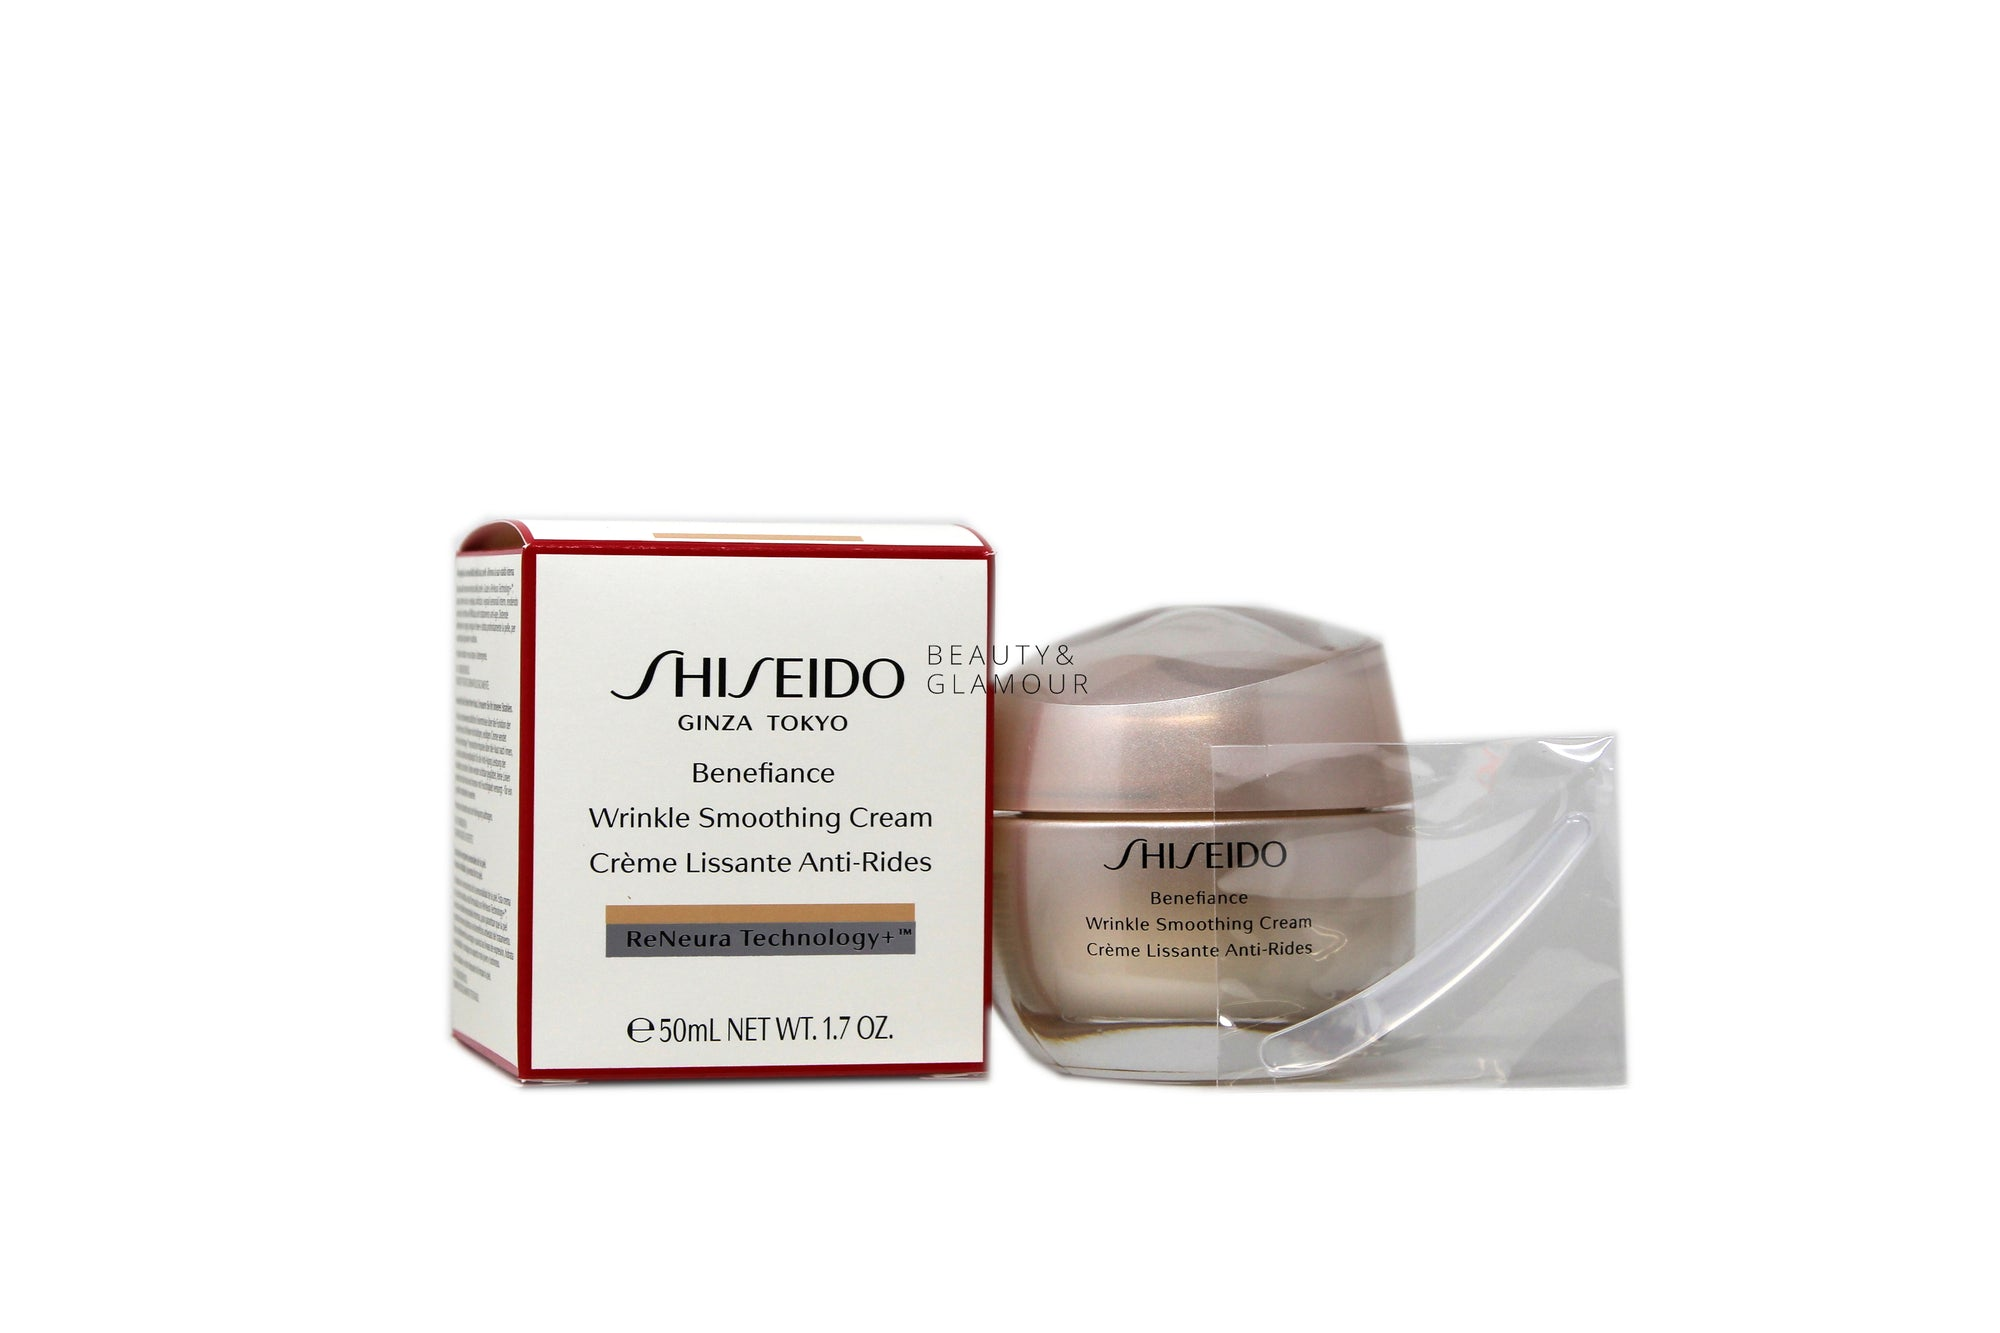 SHISEIDO BENEFIANCE WRINKLE SMOOTHING CREAM  RENEURA TECHNOLOGY+  AVAILABLE SIZE: 50 ML/1.7 OZ.  BENEFITS:  RENEURA TECHNOLOGY+™ FEATURES NATSUME AND ACTIVE RESPONSE POWDER ASHITABA TO HELP IMPROVE SKIN RECEPTIVITY TO AWAKEN AND MAINTAIN THE EFFECTIVENESS OF YOUR TREATMENT OVER TIME.